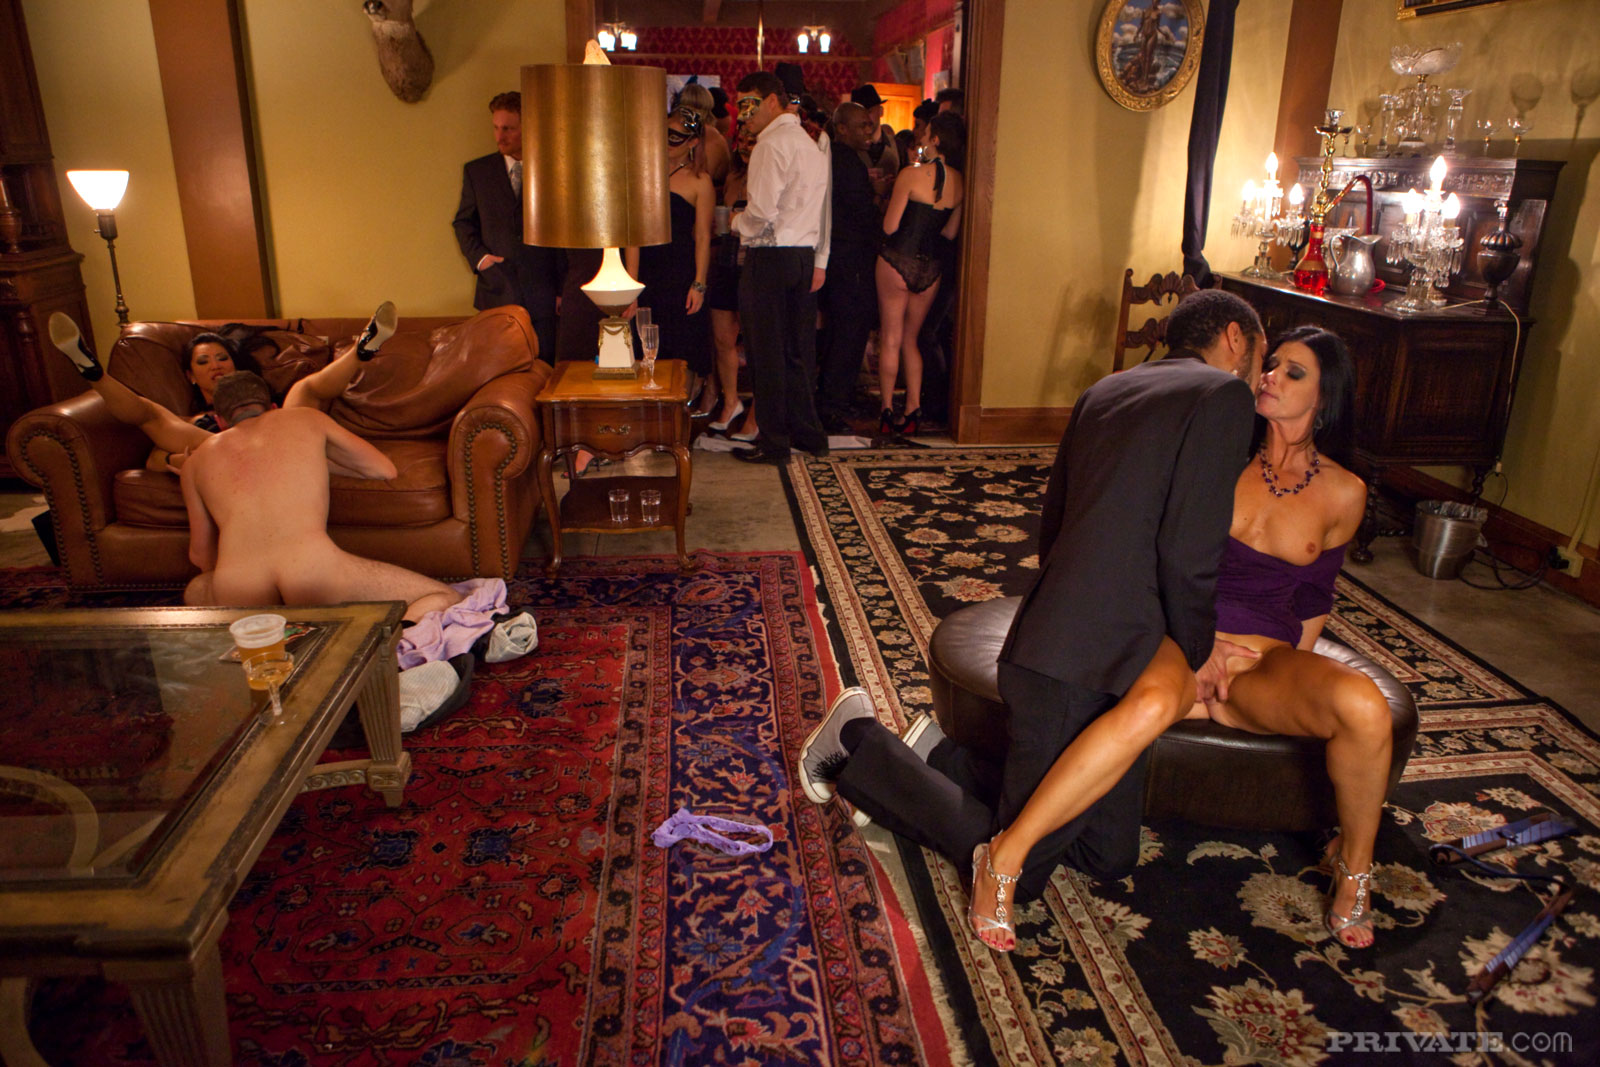 sex party sf